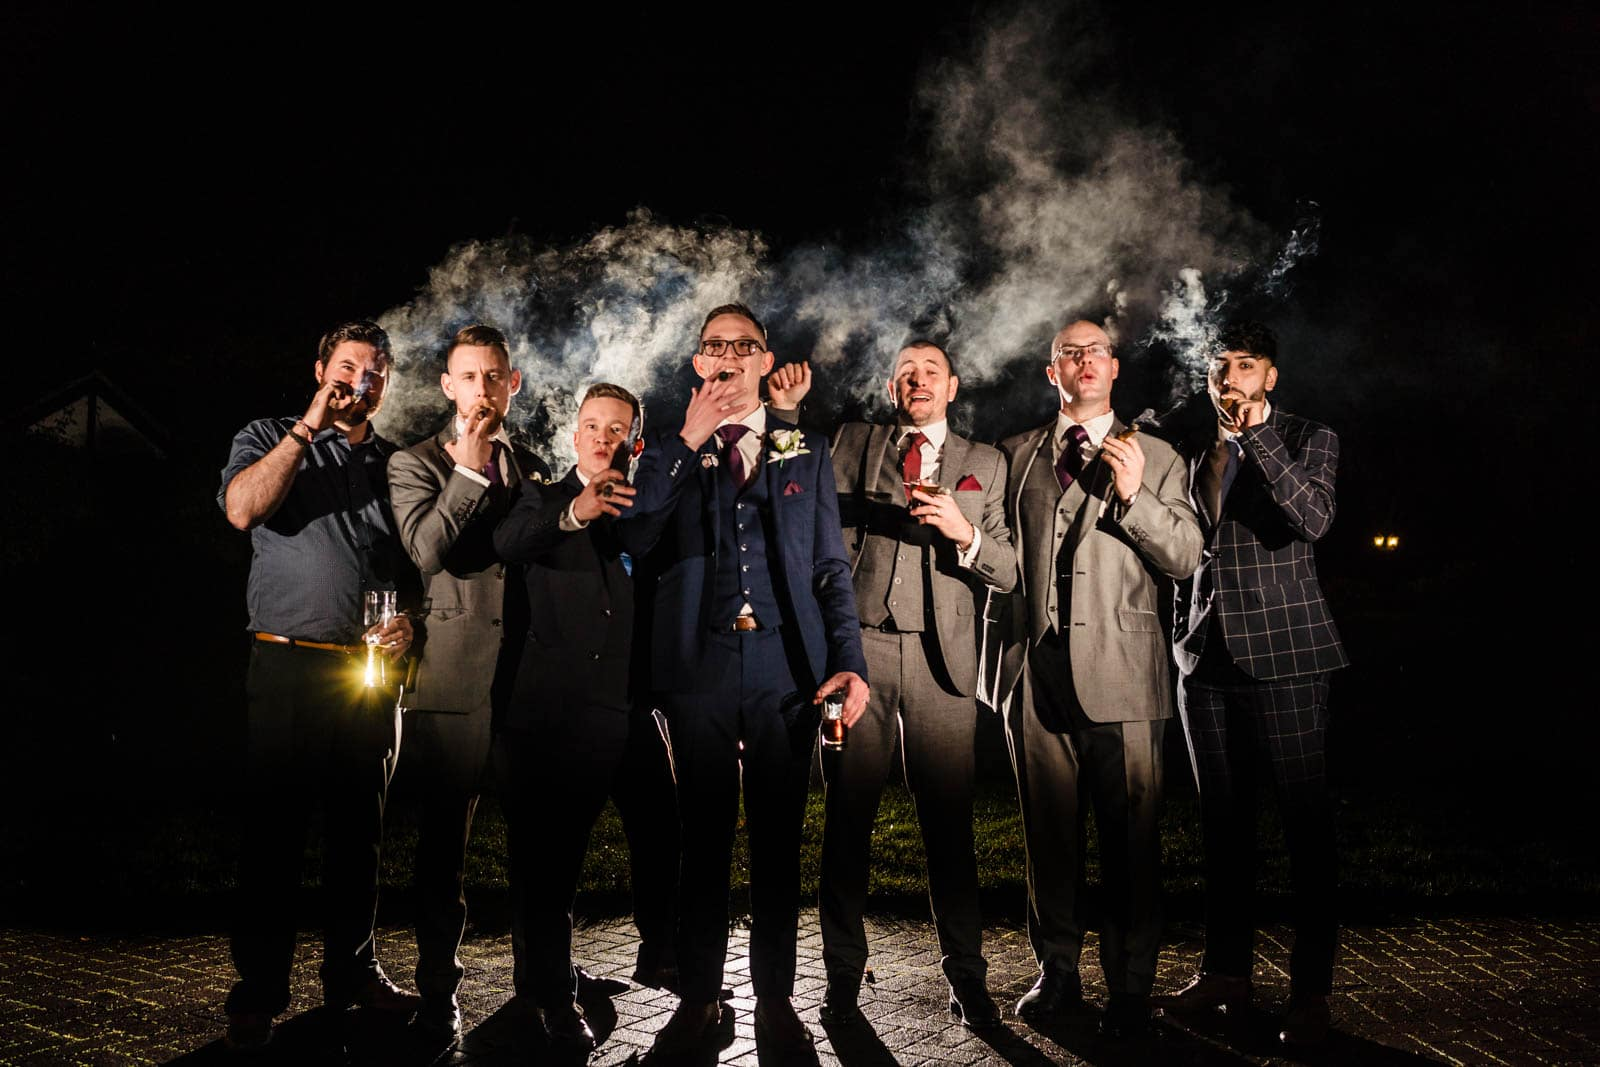 Milton Keynes Wedding Photographers - epic Off camera flash, groomsmen cigar photo using magmod and godox flashes